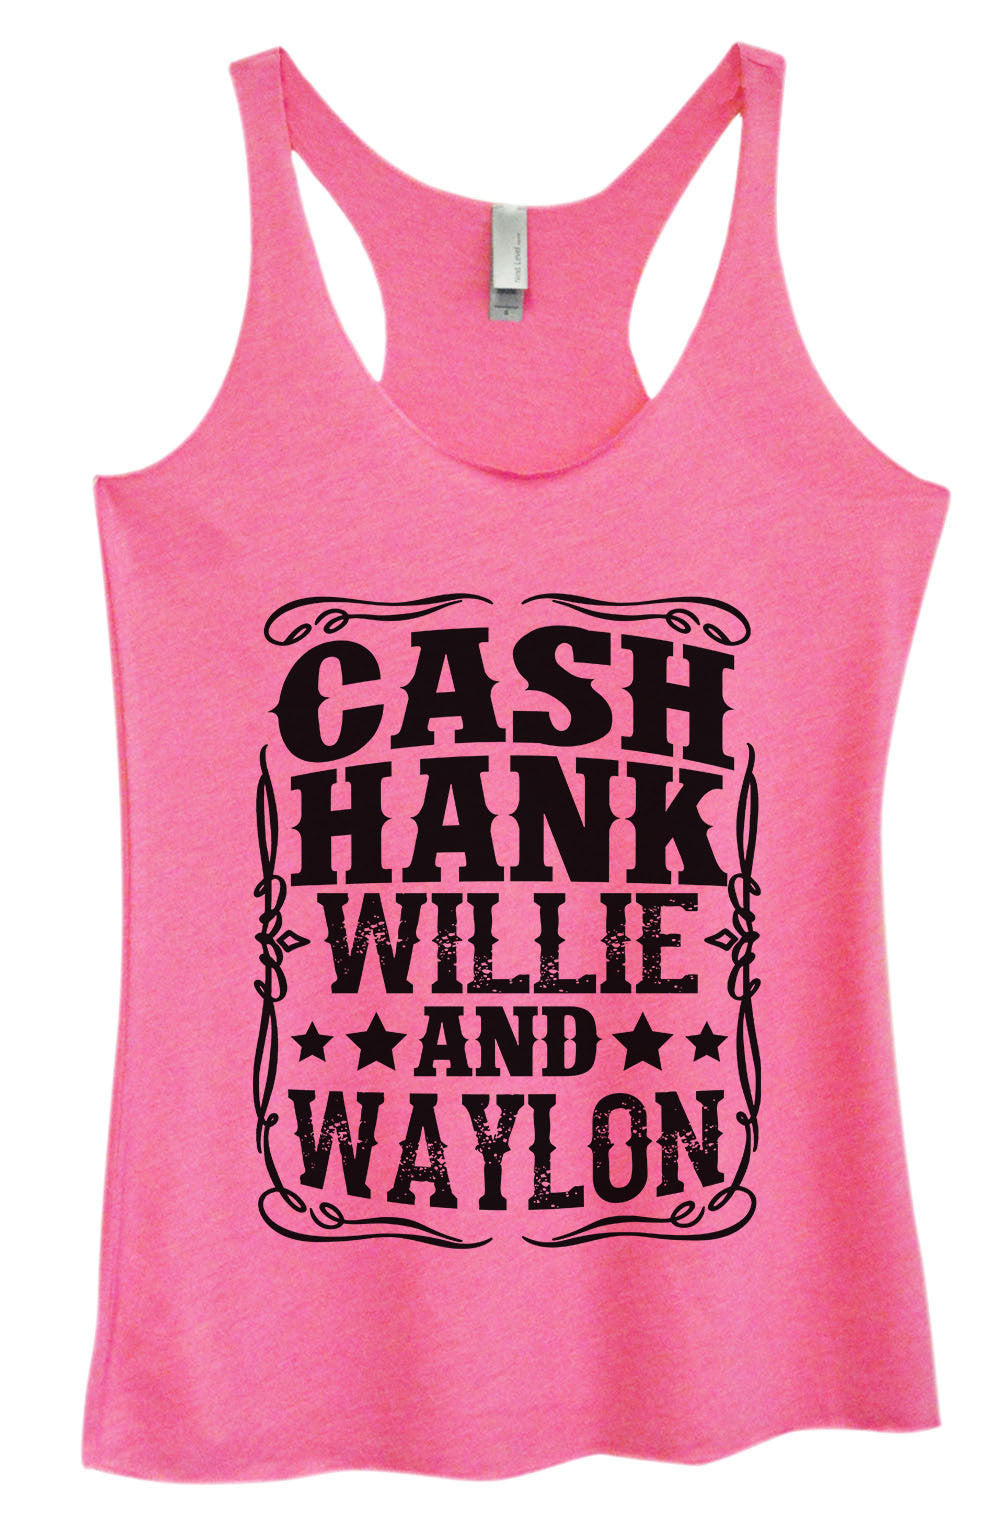 Womens Fashion Triblend Tank Top - Cash Hank Willie And Waylon - Tri-1571 - Funny Shirts Tank Tops Burnouts and Triblends  - 1